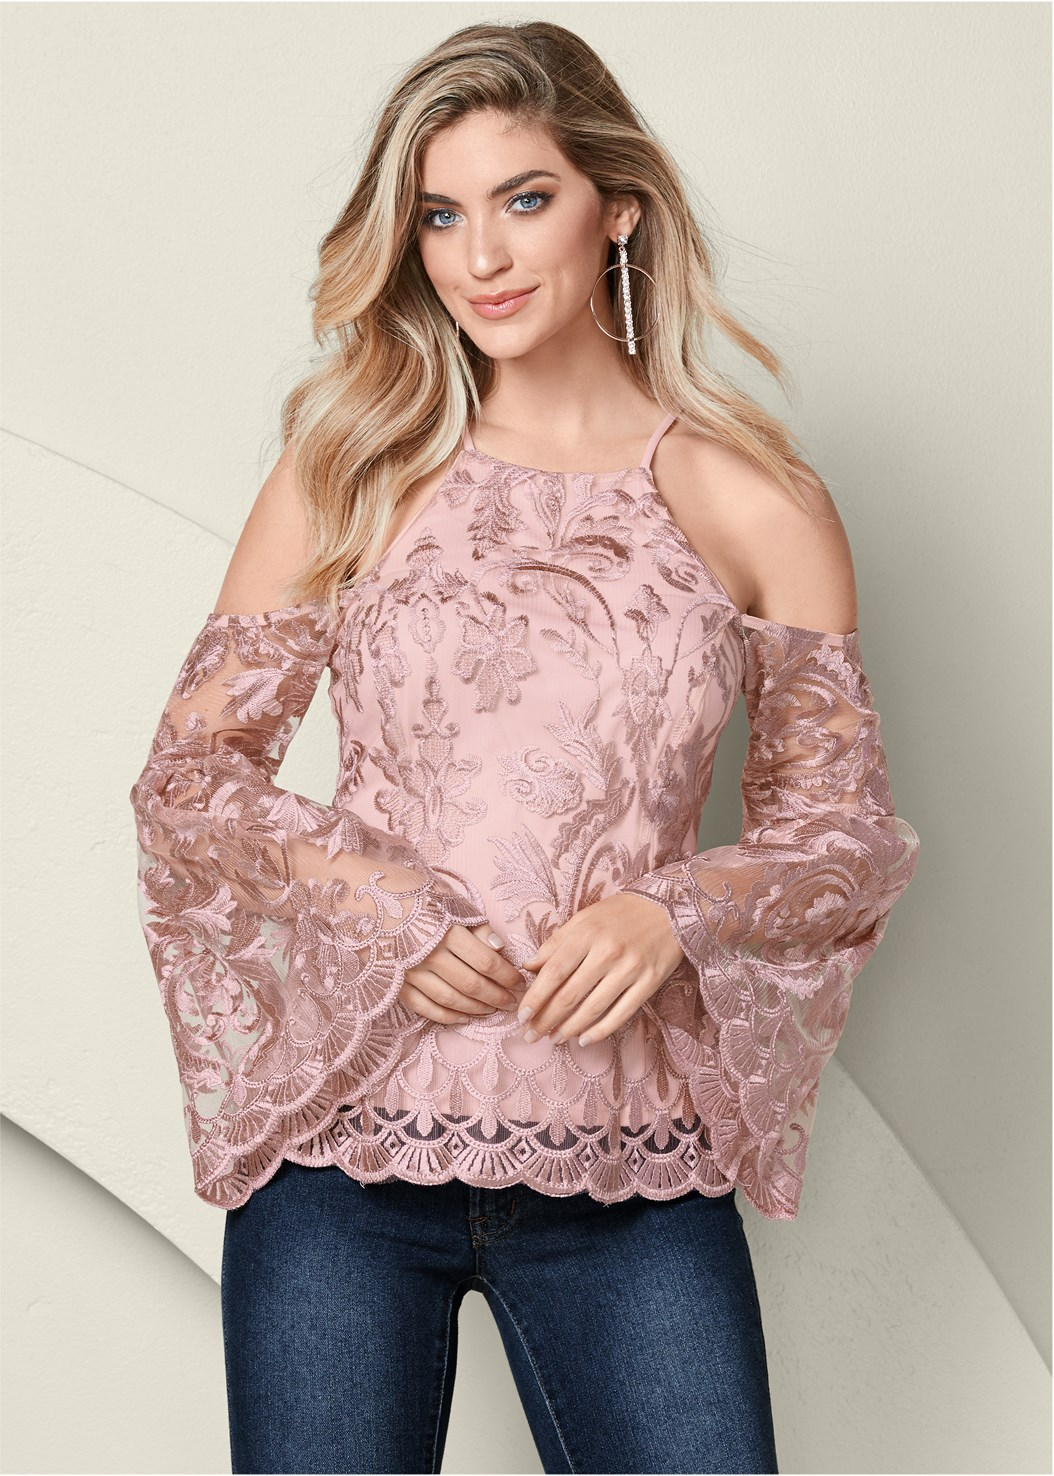 Lace Bell Sleeve Top,Mid Rise Color Skinny Jeans